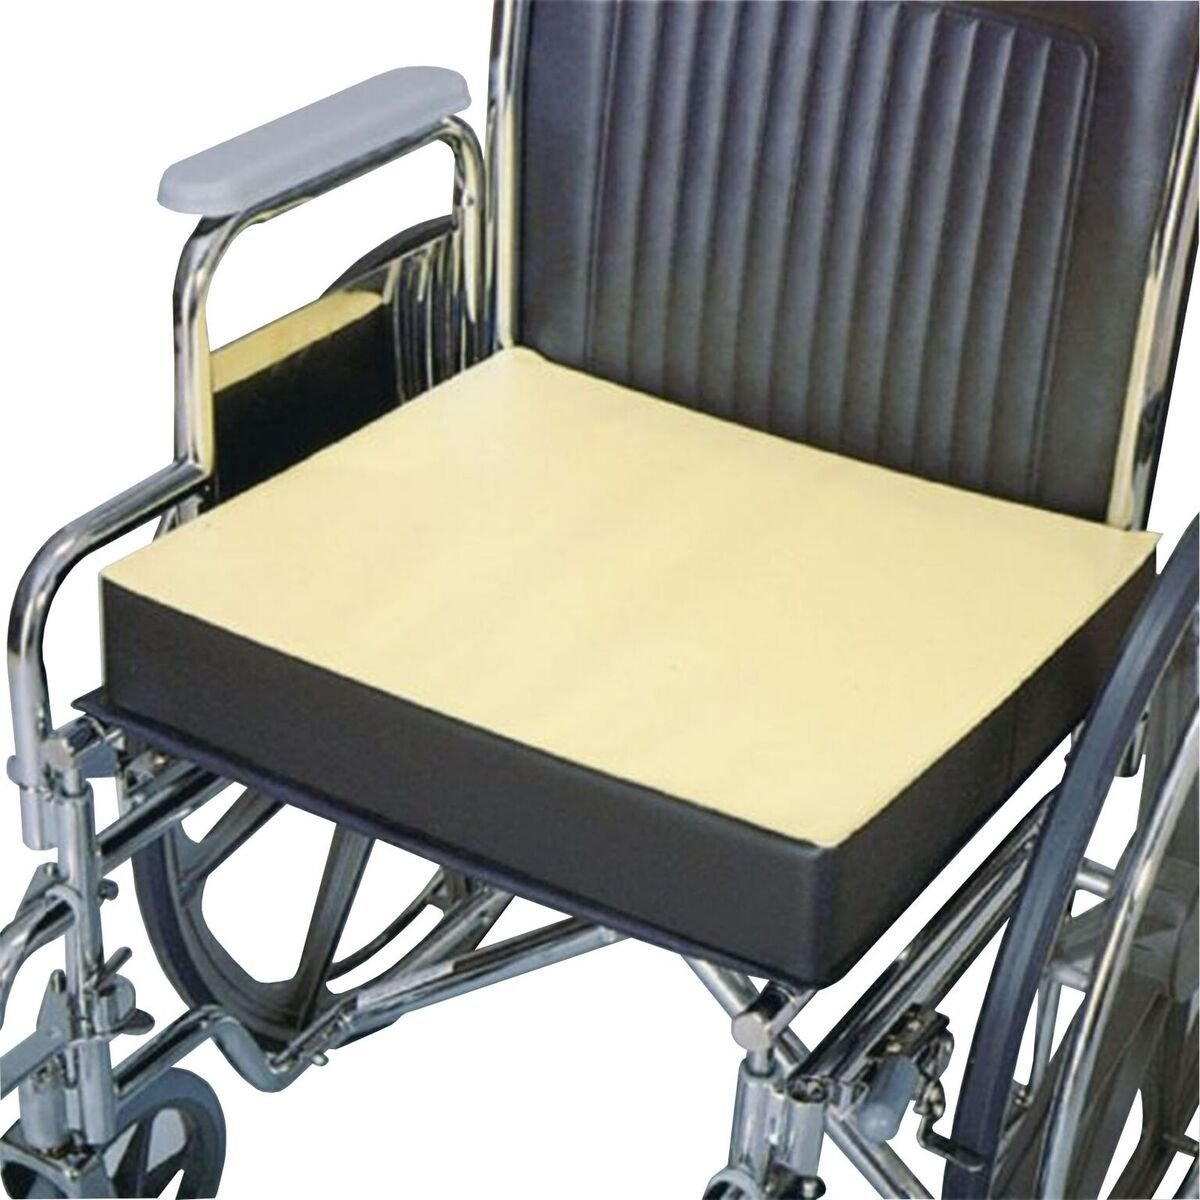 Physical Therapy Aids 081226802 Comfort Foam Wheelchair Cushion, 18''x 16''x 3'' by Physical Therapy Aids